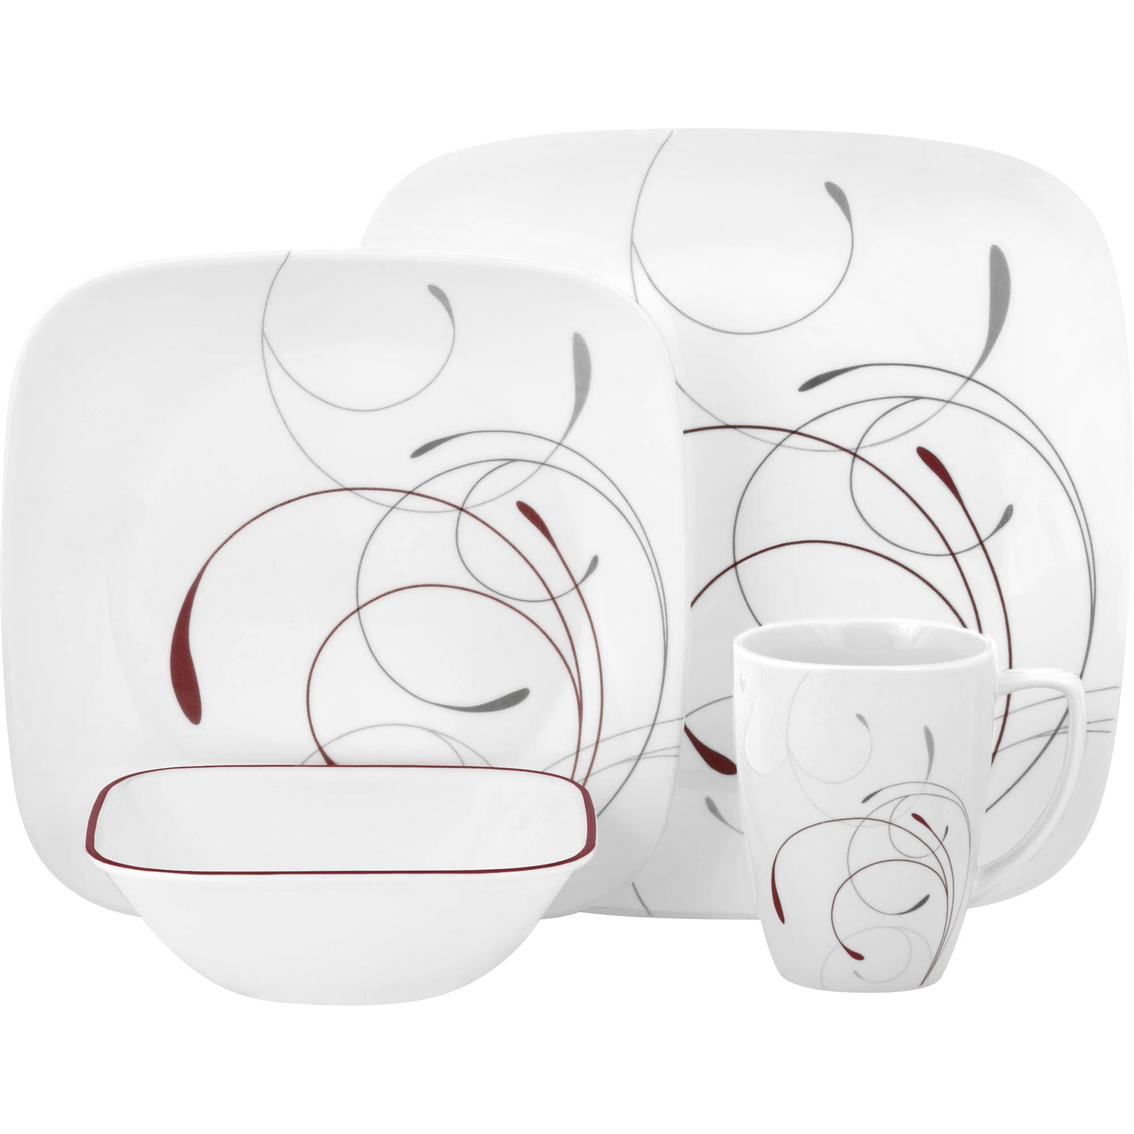 3535  sc 1 st  ShopMyExchange.com & Corelle Square Splendor 16 Pc. Dinnerware Set | Dinnerware Sets ...